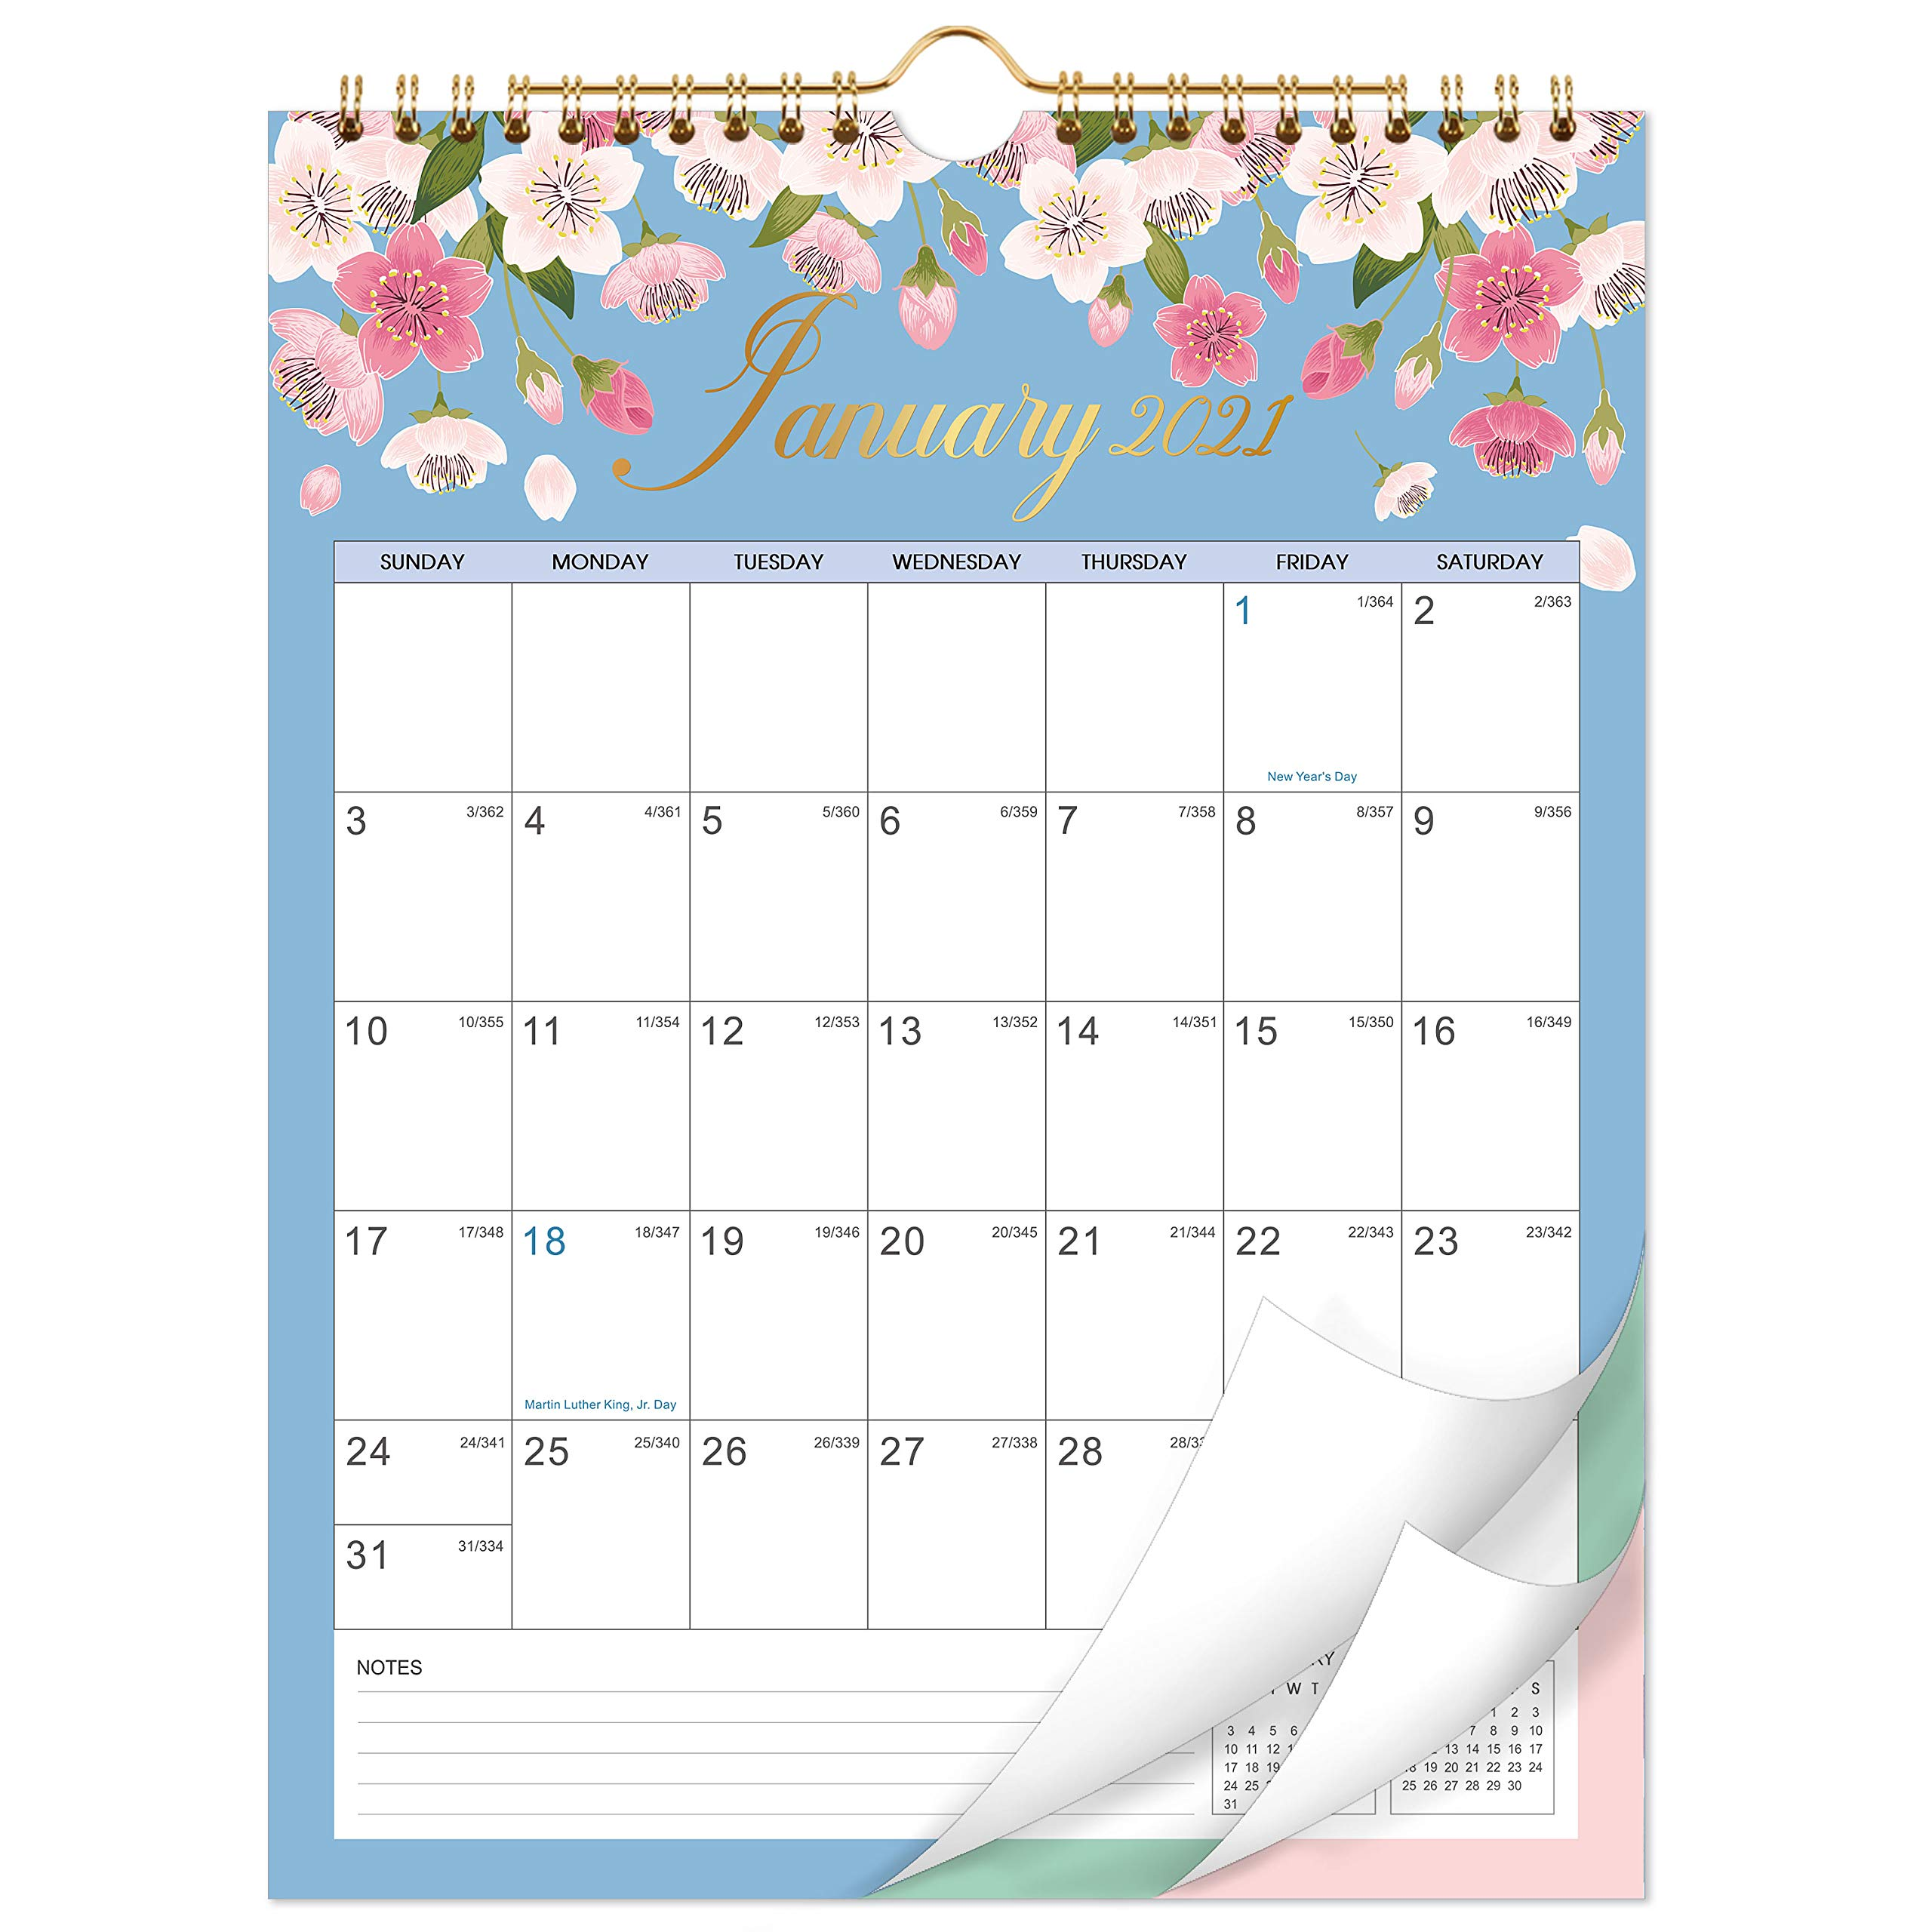 Large Wall Calendar 2022.2021 2022 Calendar 18 Monthly Wall Calendar With Thick Paper 8 5 X 11 Jan 2021 June 2022 Twin Wire Binding Hanging Hook Unlined Blocks With Julian Dates Floral Buy Online In India At Desertcart In Productid 181465264